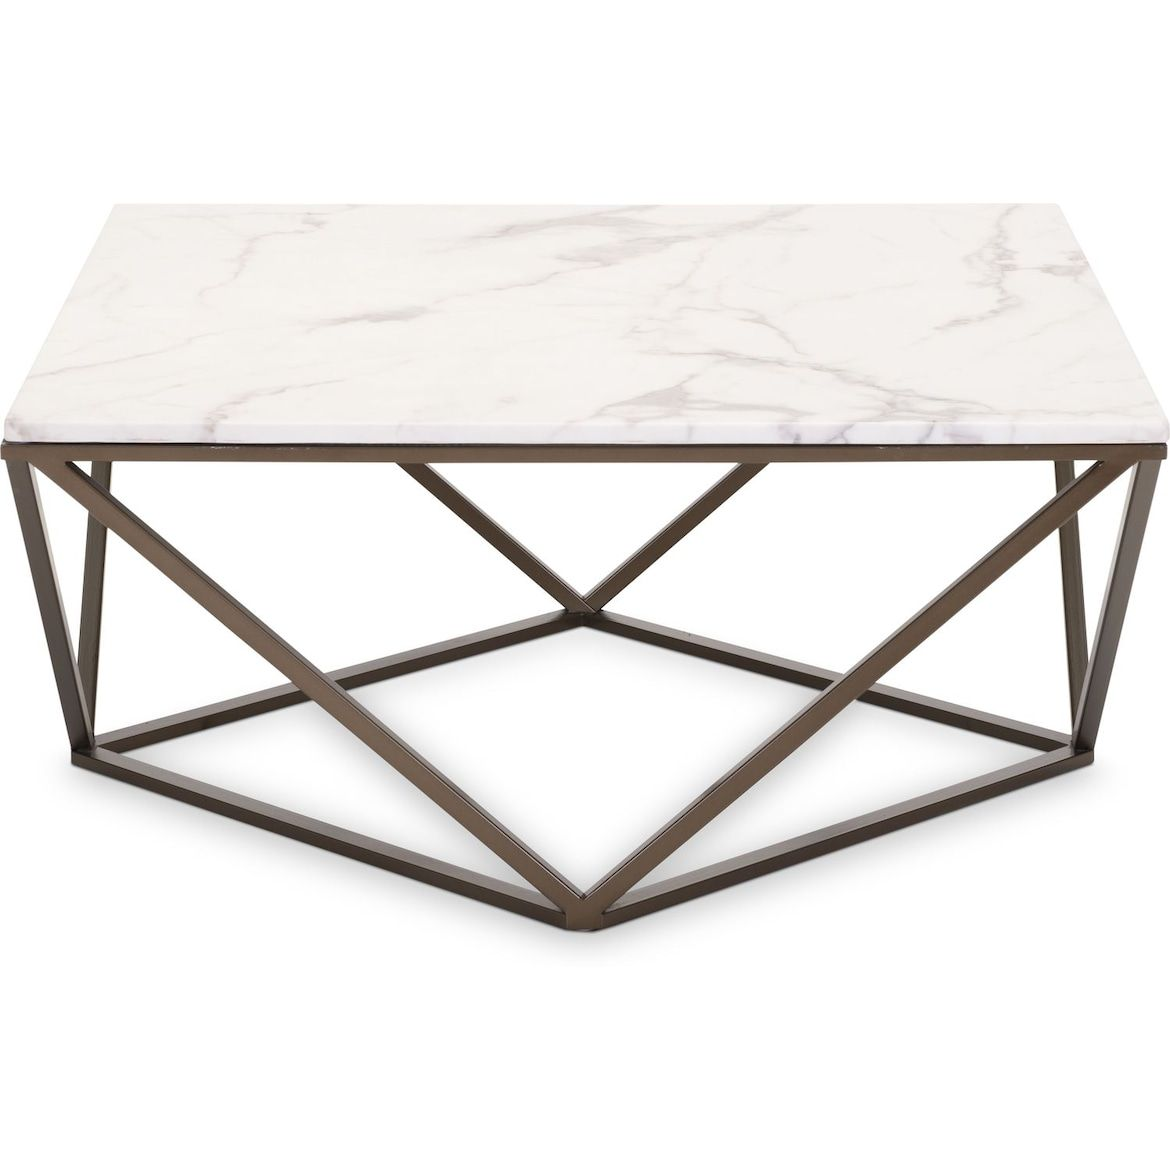 Emma Marble Coffee Table Value City Furniture And Mattresses Marble Top Coffee Table Coffee Table Furniture [ 1170 x 1170 Pixel ]